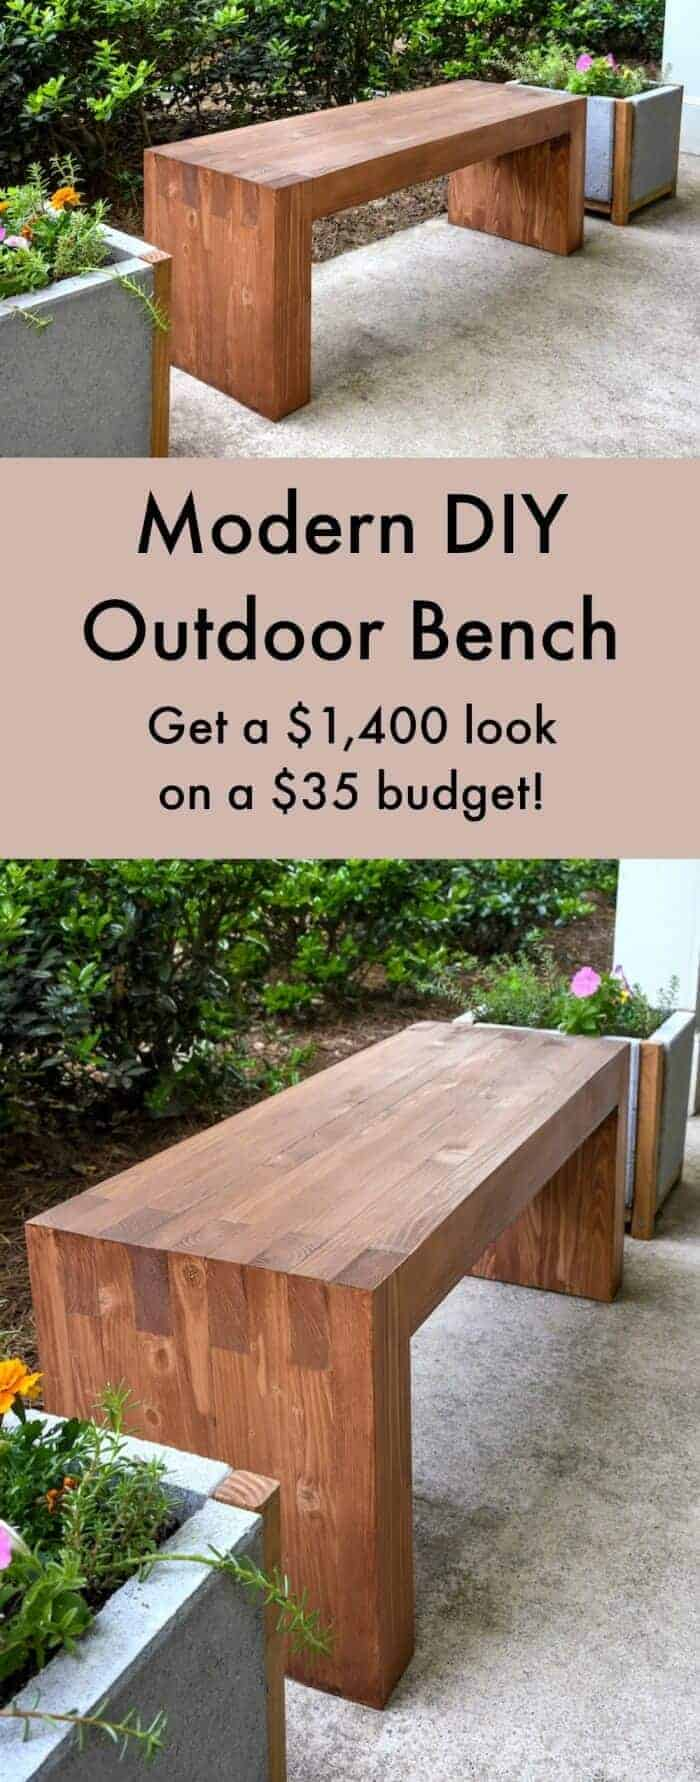 Williams Sonoma Inspired Modern Outdoor Bench by DIY Candy | Budget Backyard Project Ideas